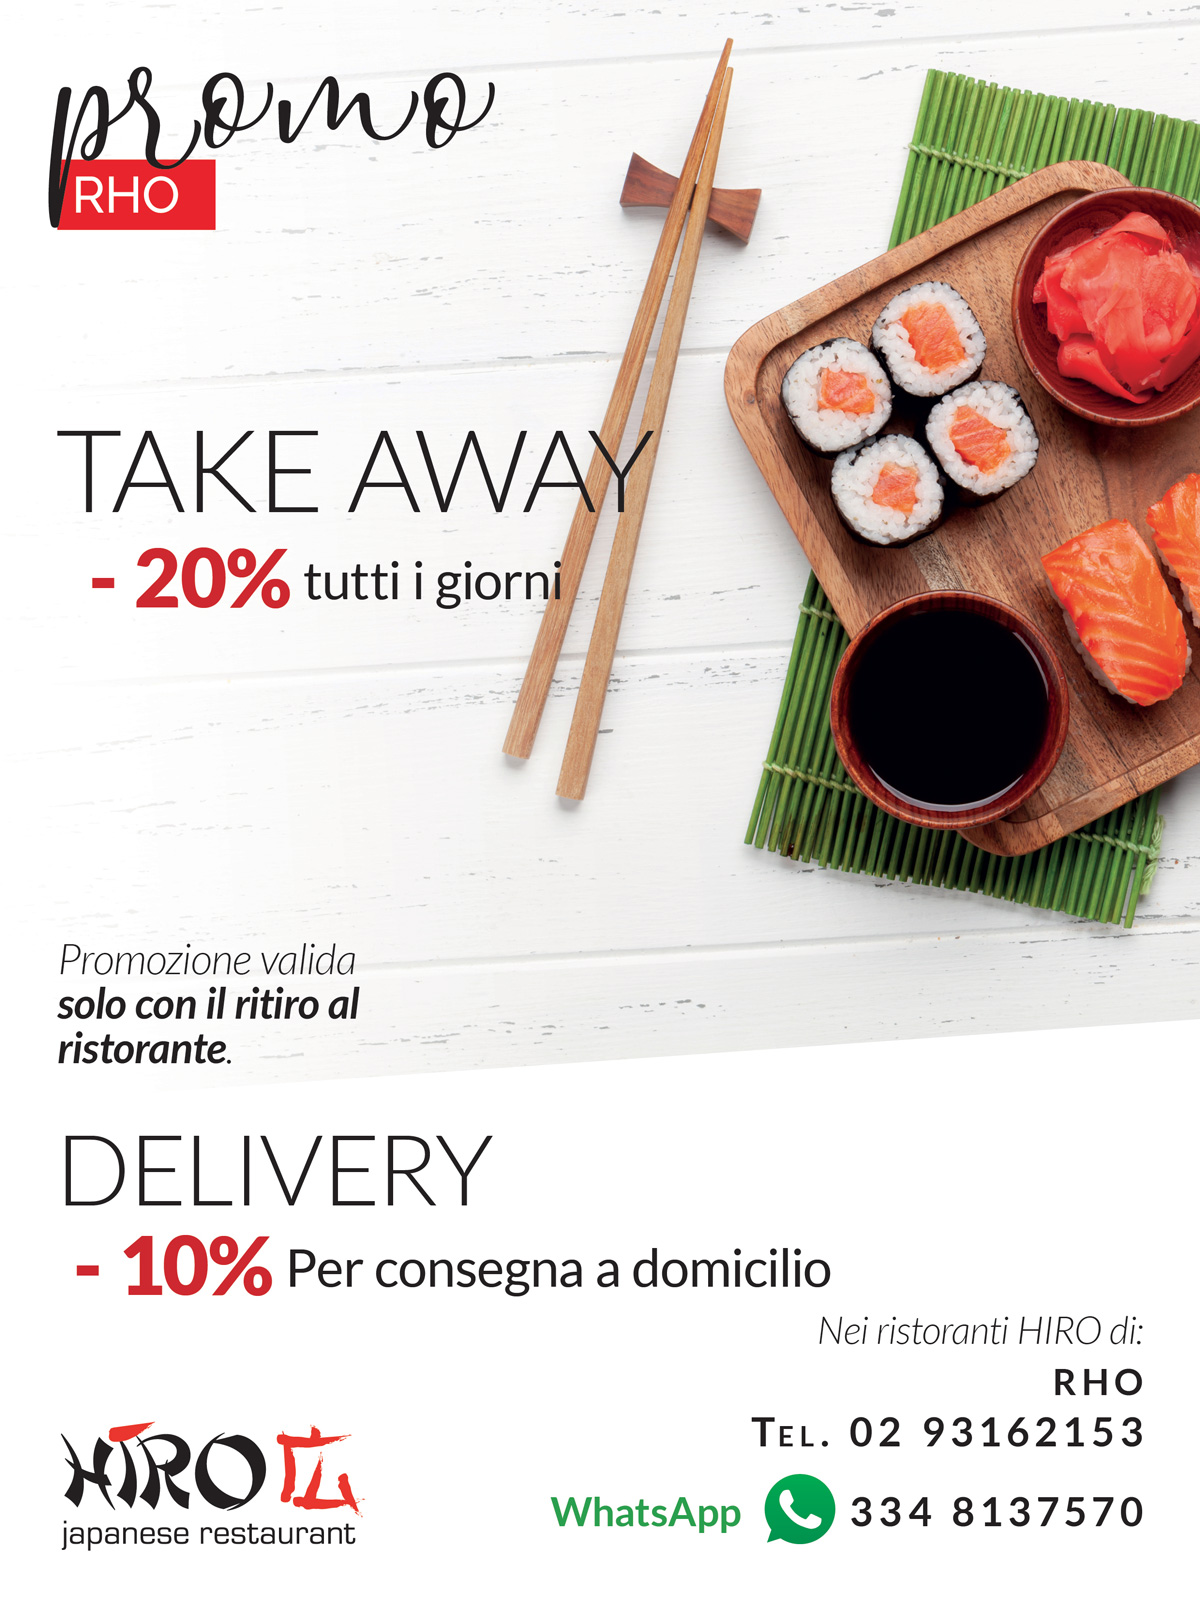 Post_Promo_Take_Away_HIRO_GENNAIO_RHO